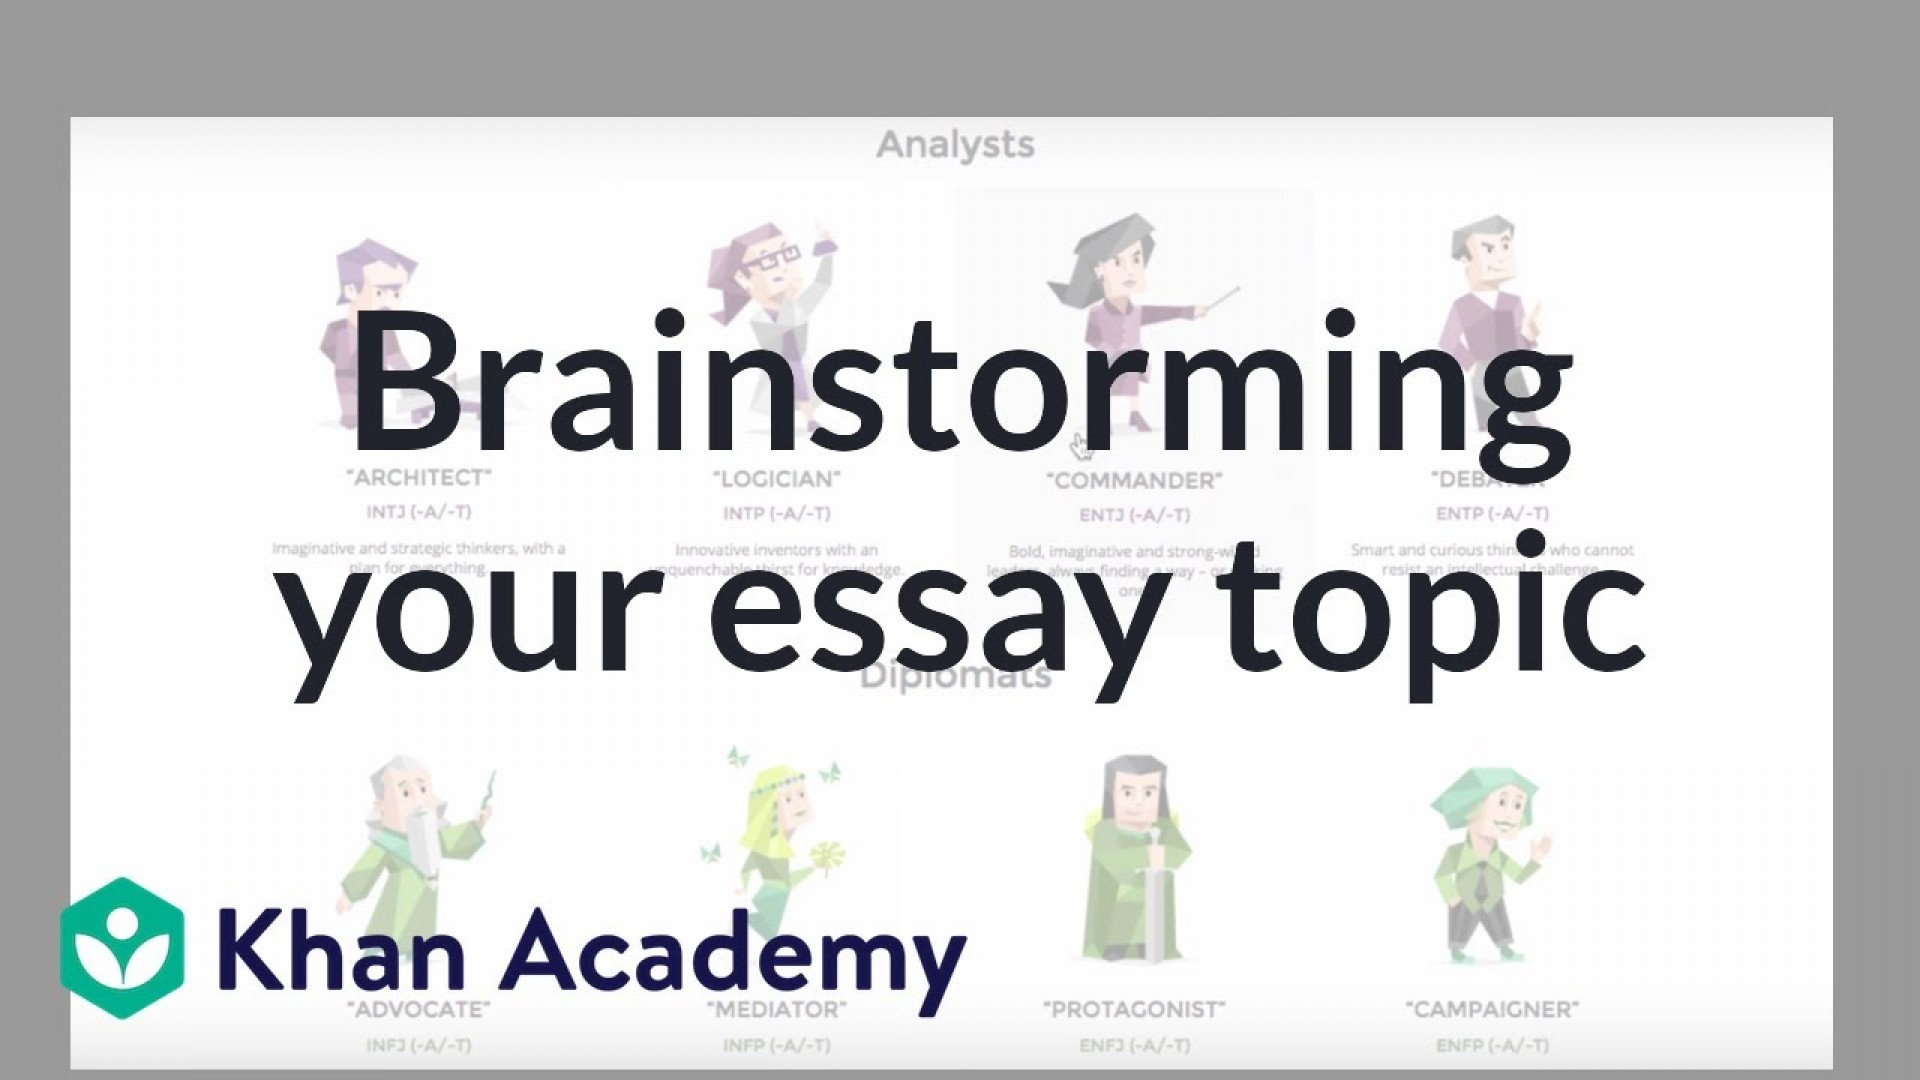 020 Maxresdefault Essay Brainstorming Outstanding Writing Techniques Topics College 1920